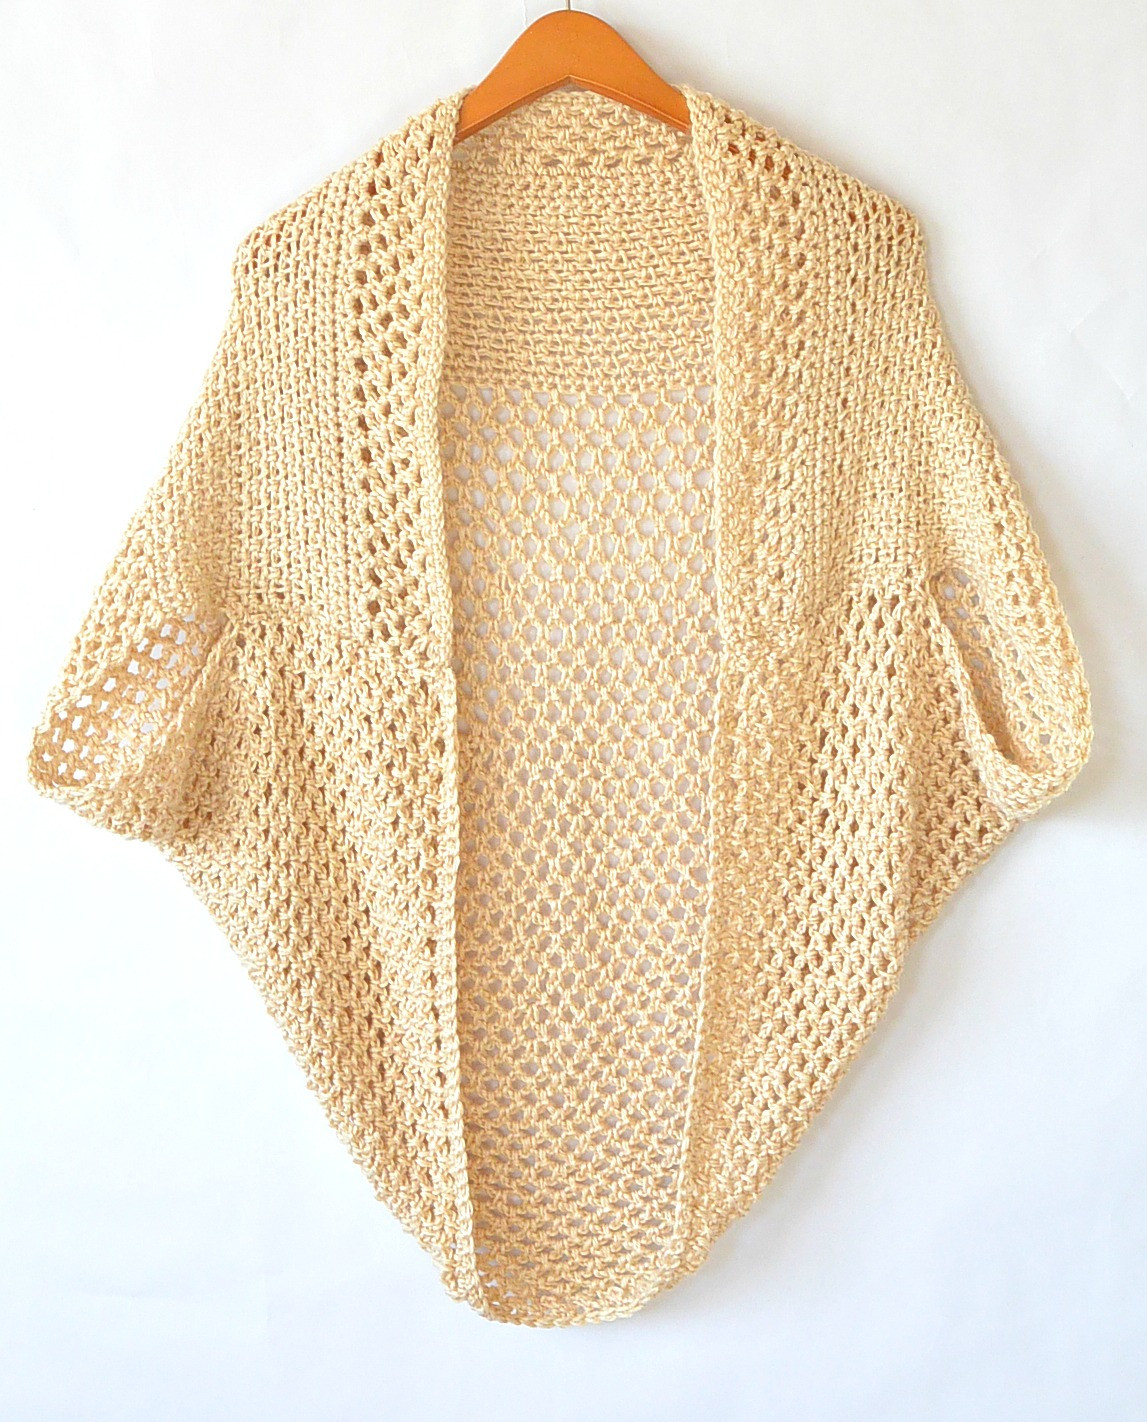 Crochet Shrug Pattern Inspirational Mod Mesh Honey Blanket Sweater – Mama In A Stitch Of Awesome 42 Images Crochet Shrug Pattern